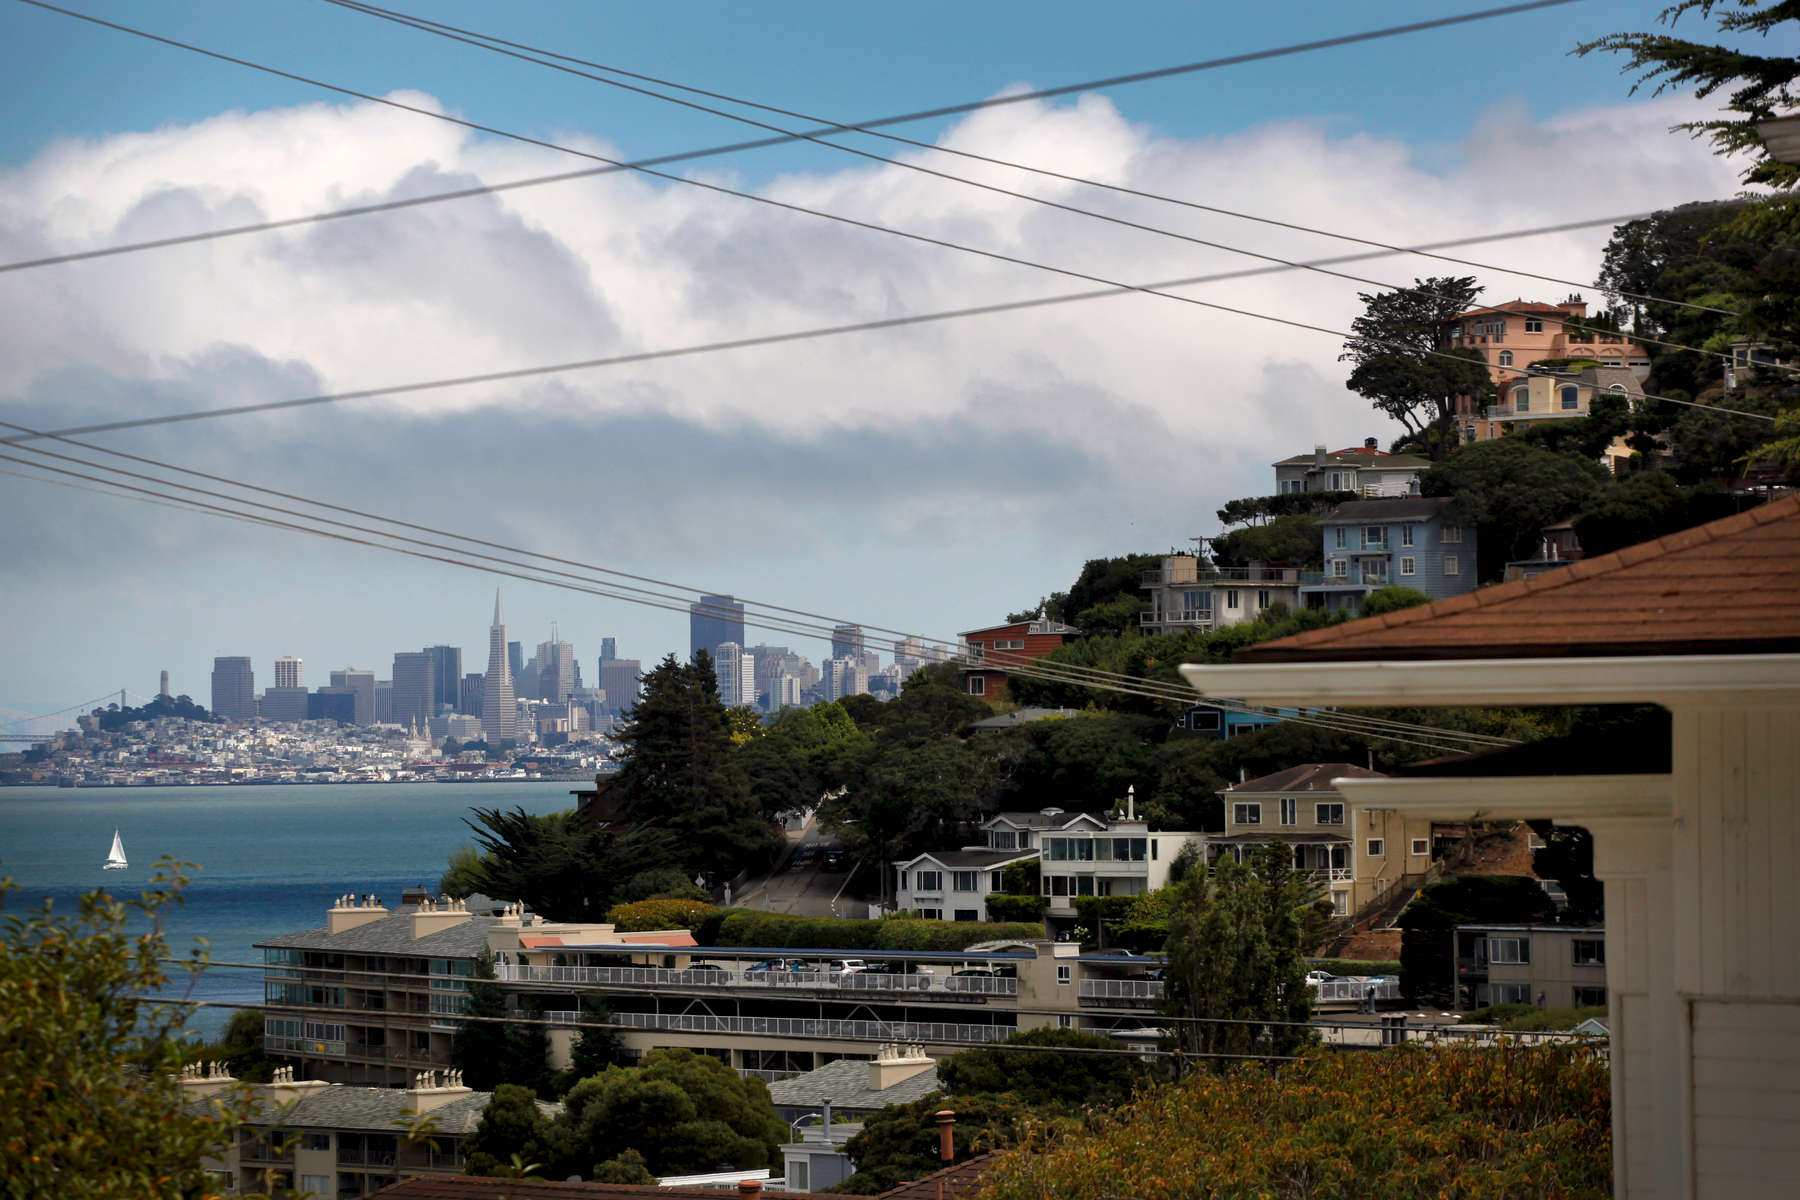 The San Francisco skyline sticks out over the hillside homes in Sausalito.